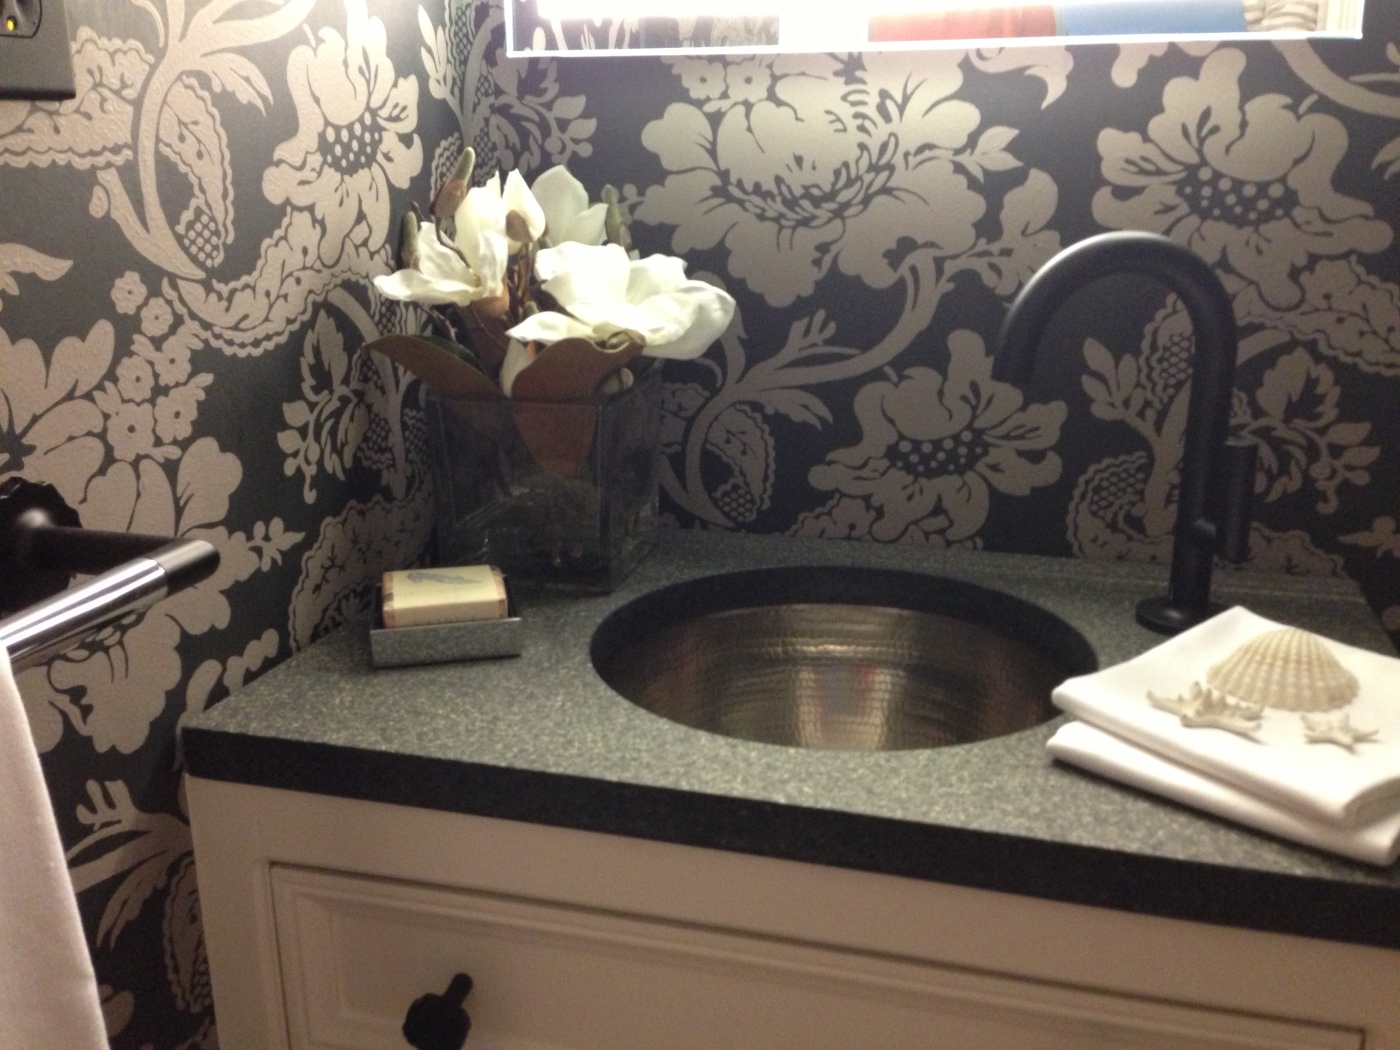 Secret Cove Show House 2013 - Powder Room. Designer: Yvonne Blacker